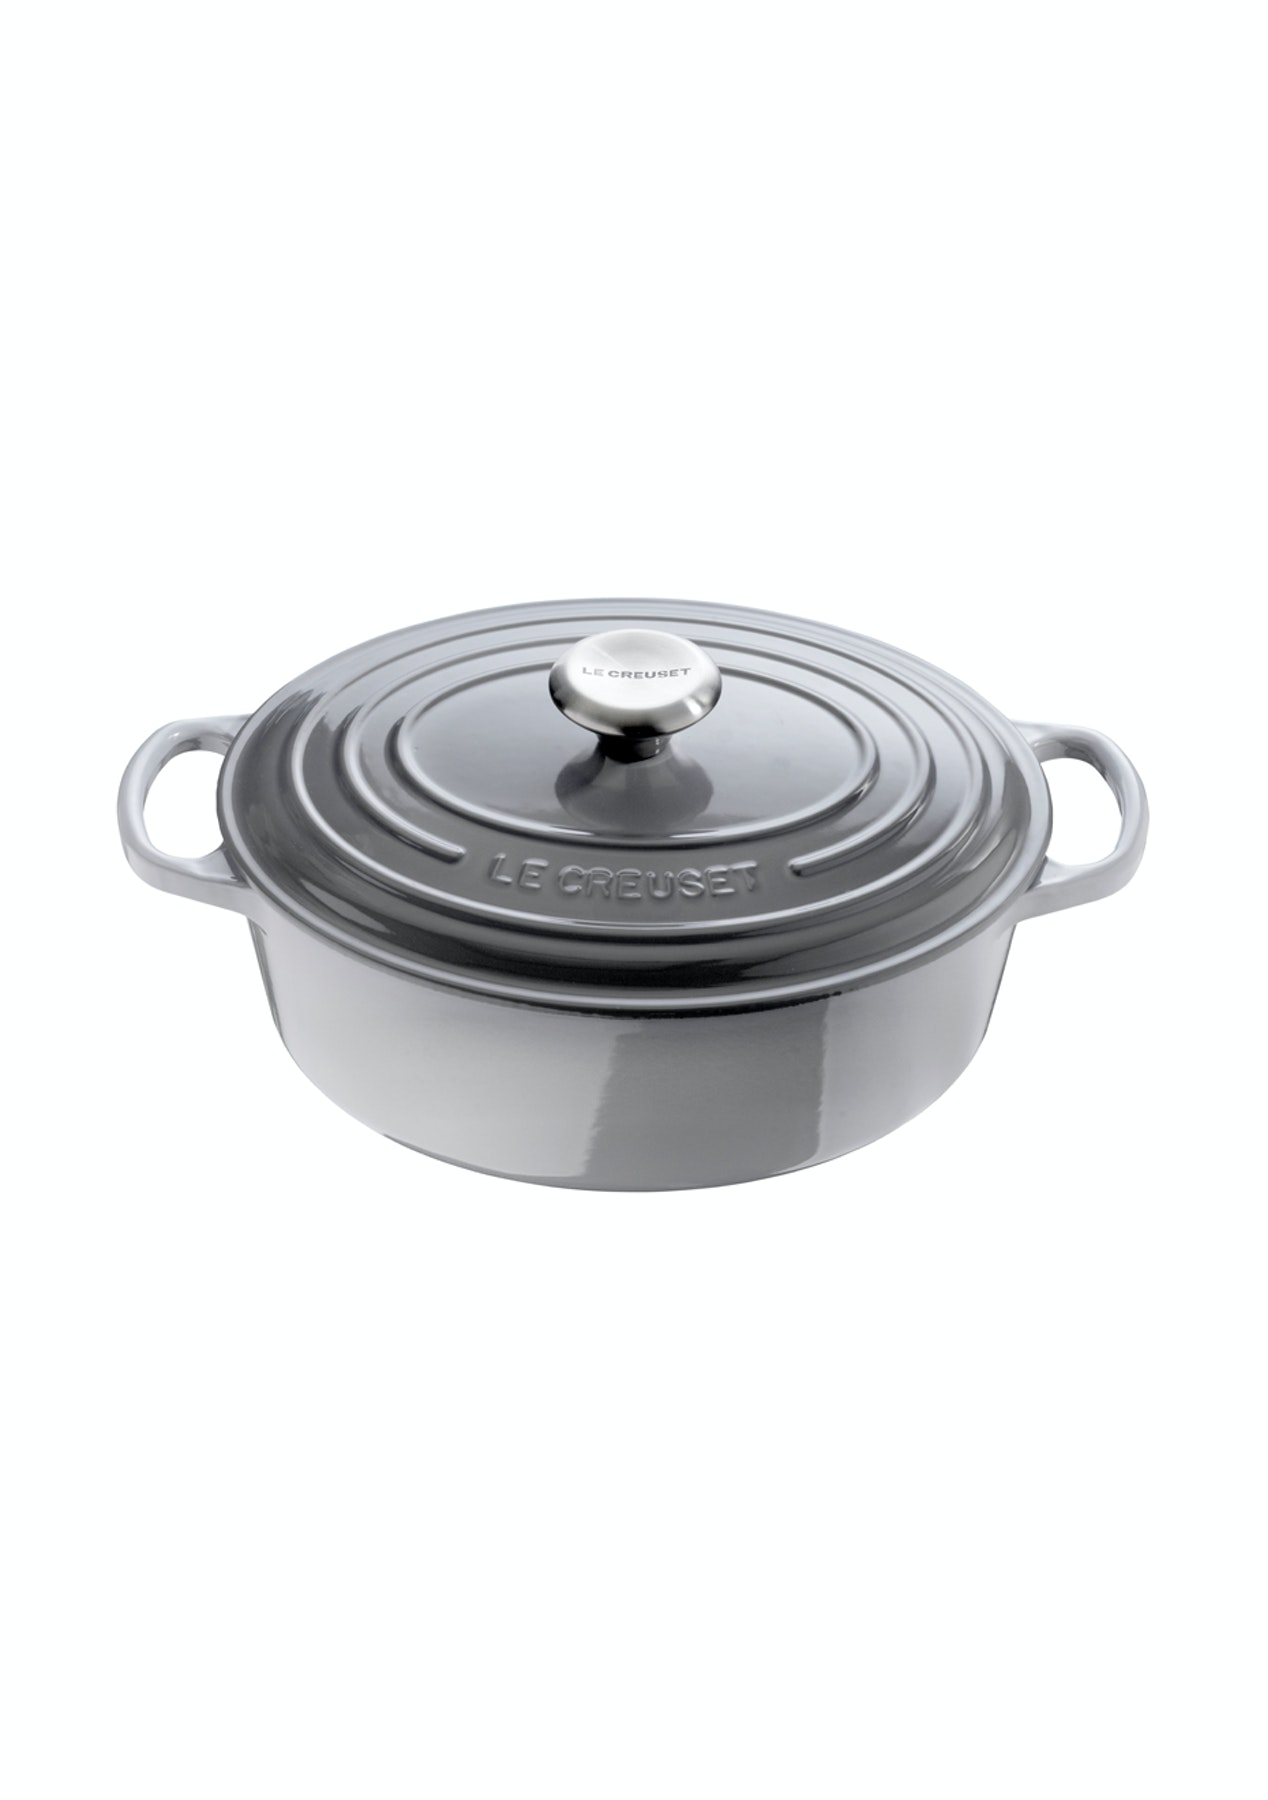 Le Creuset Lifetime Guarantee: Cast Iron Signatue Oval Casserole 29cm